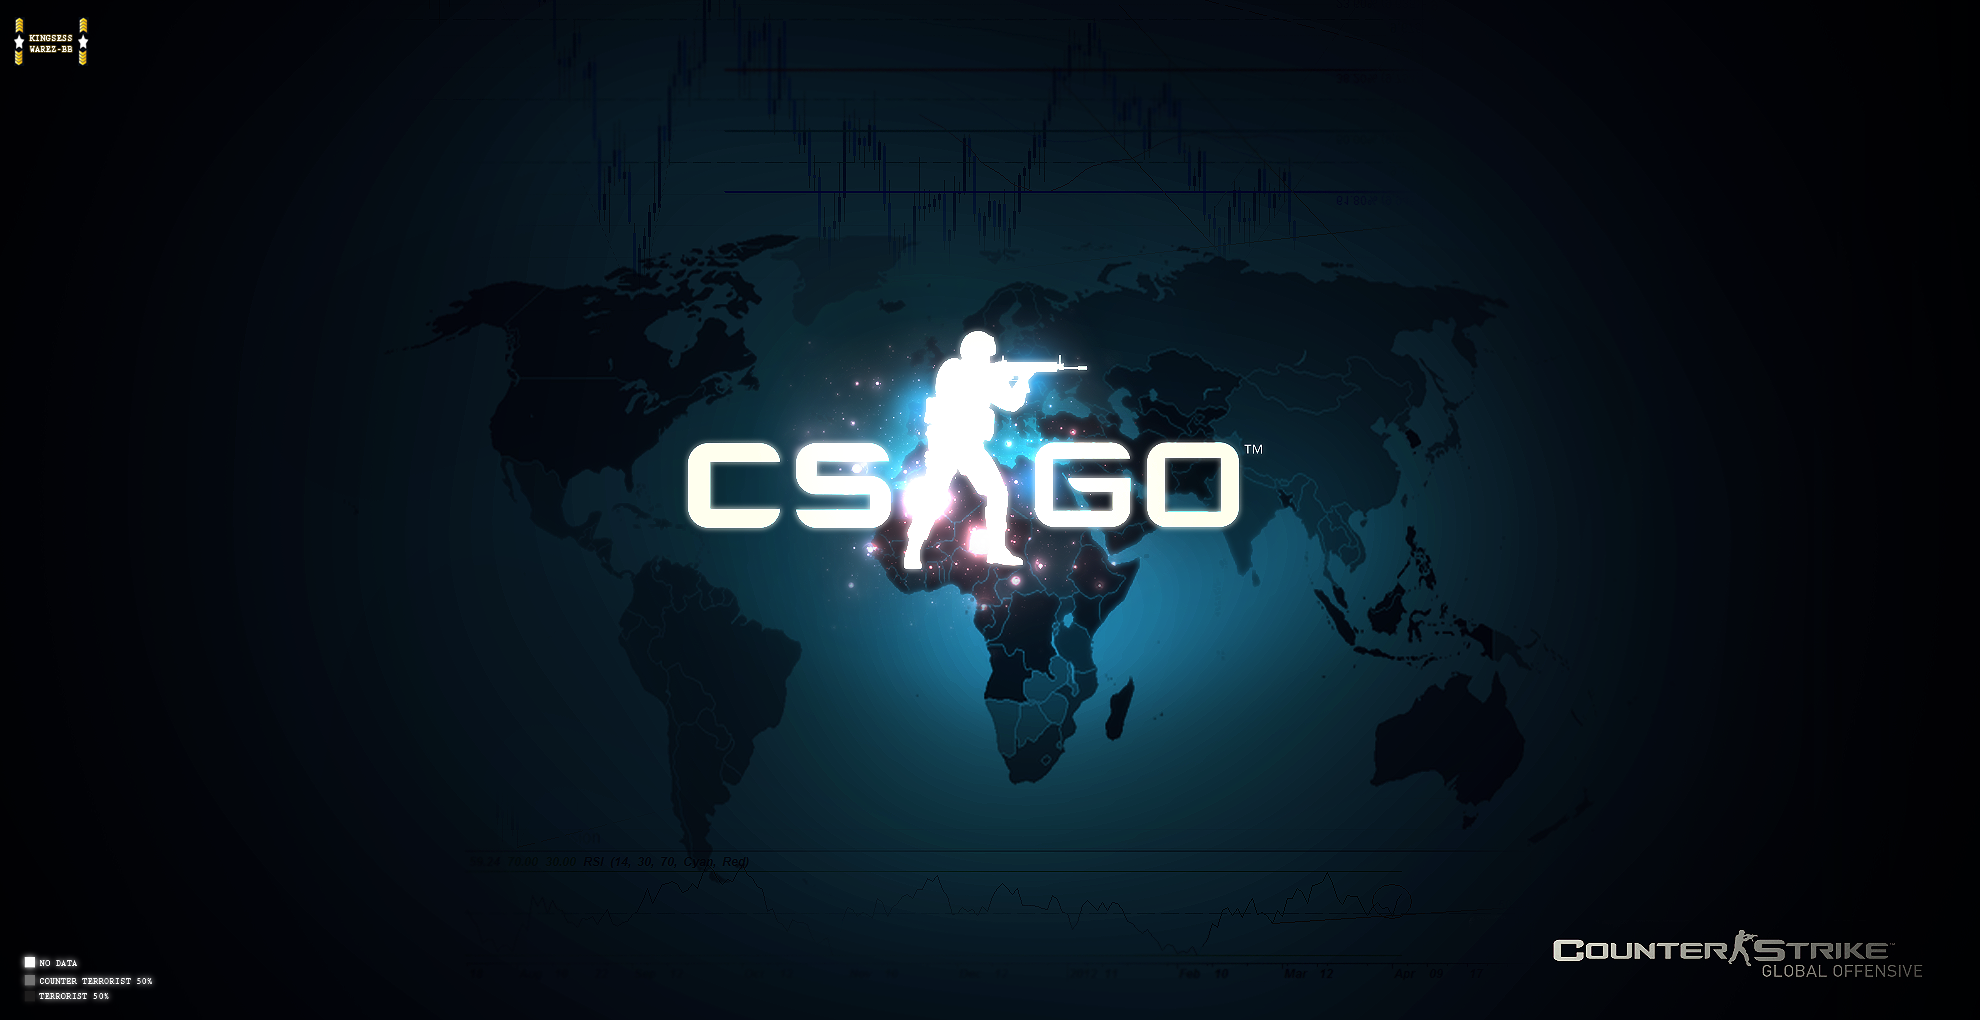 CSGO Toll Wallpaper And Background Image